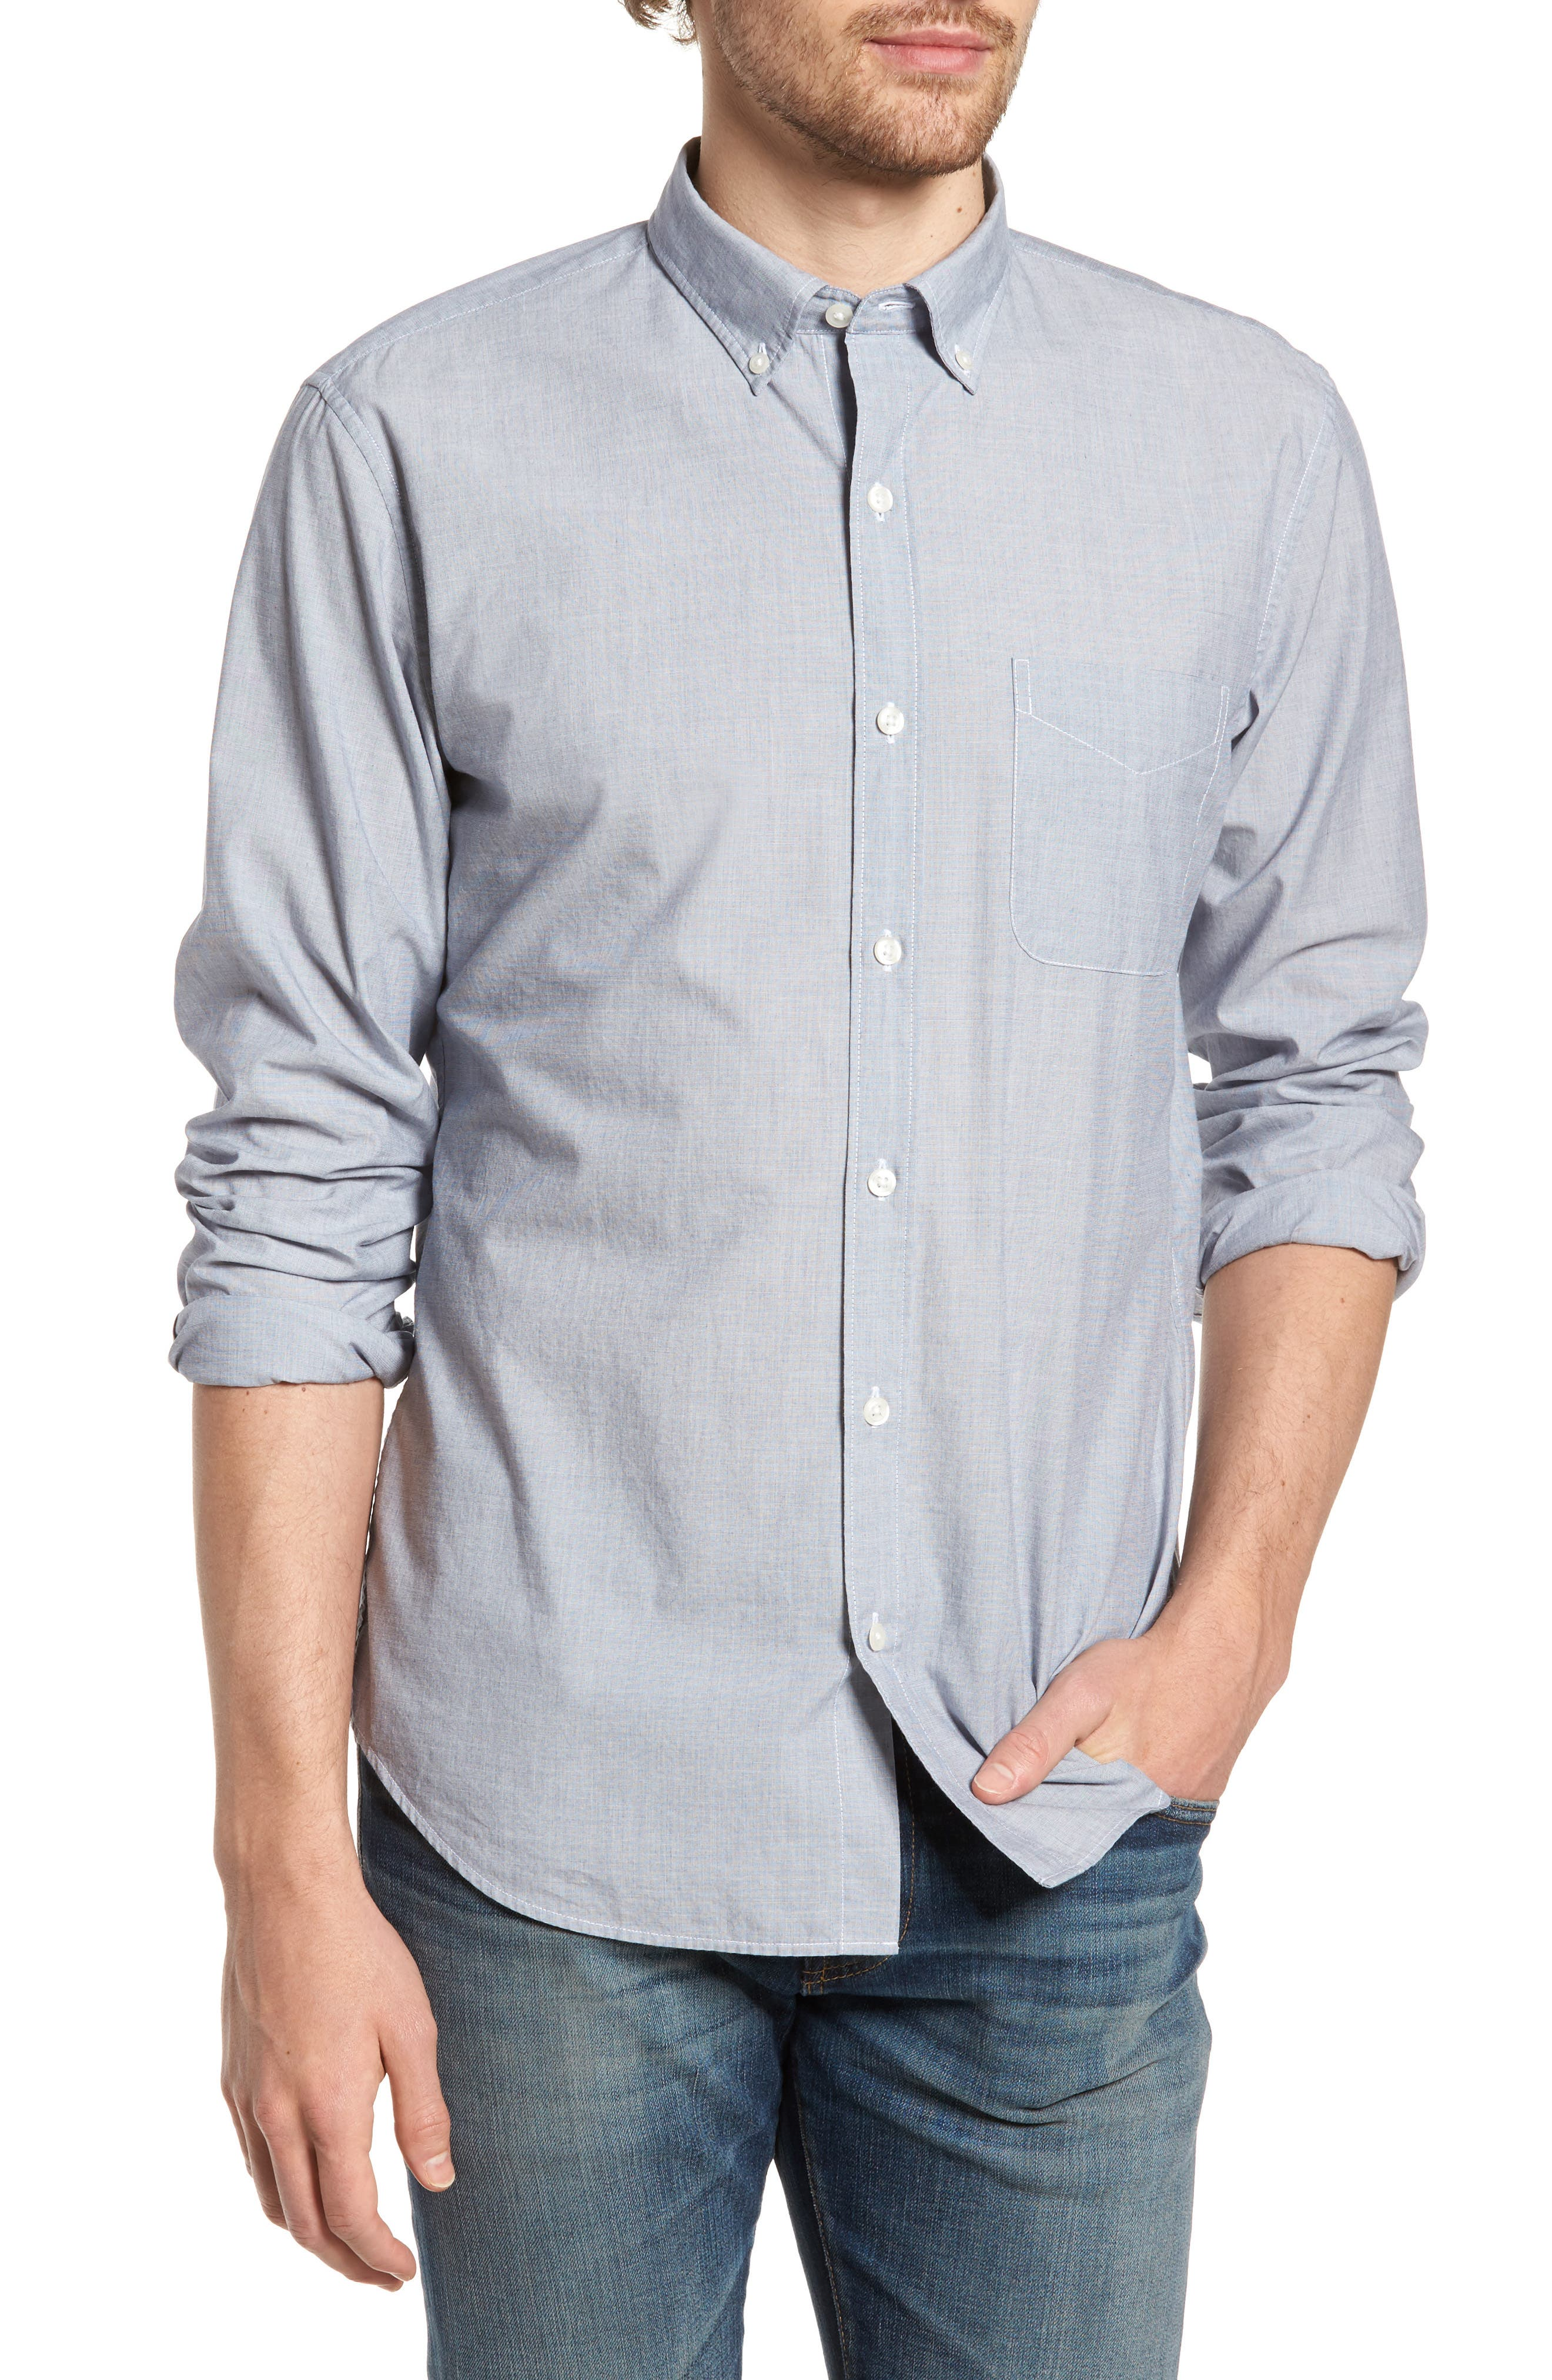 Summerweight Slim Fit Sport Shirt,                             Main thumbnail 1, color,                             End On End Solid - Blue Depths